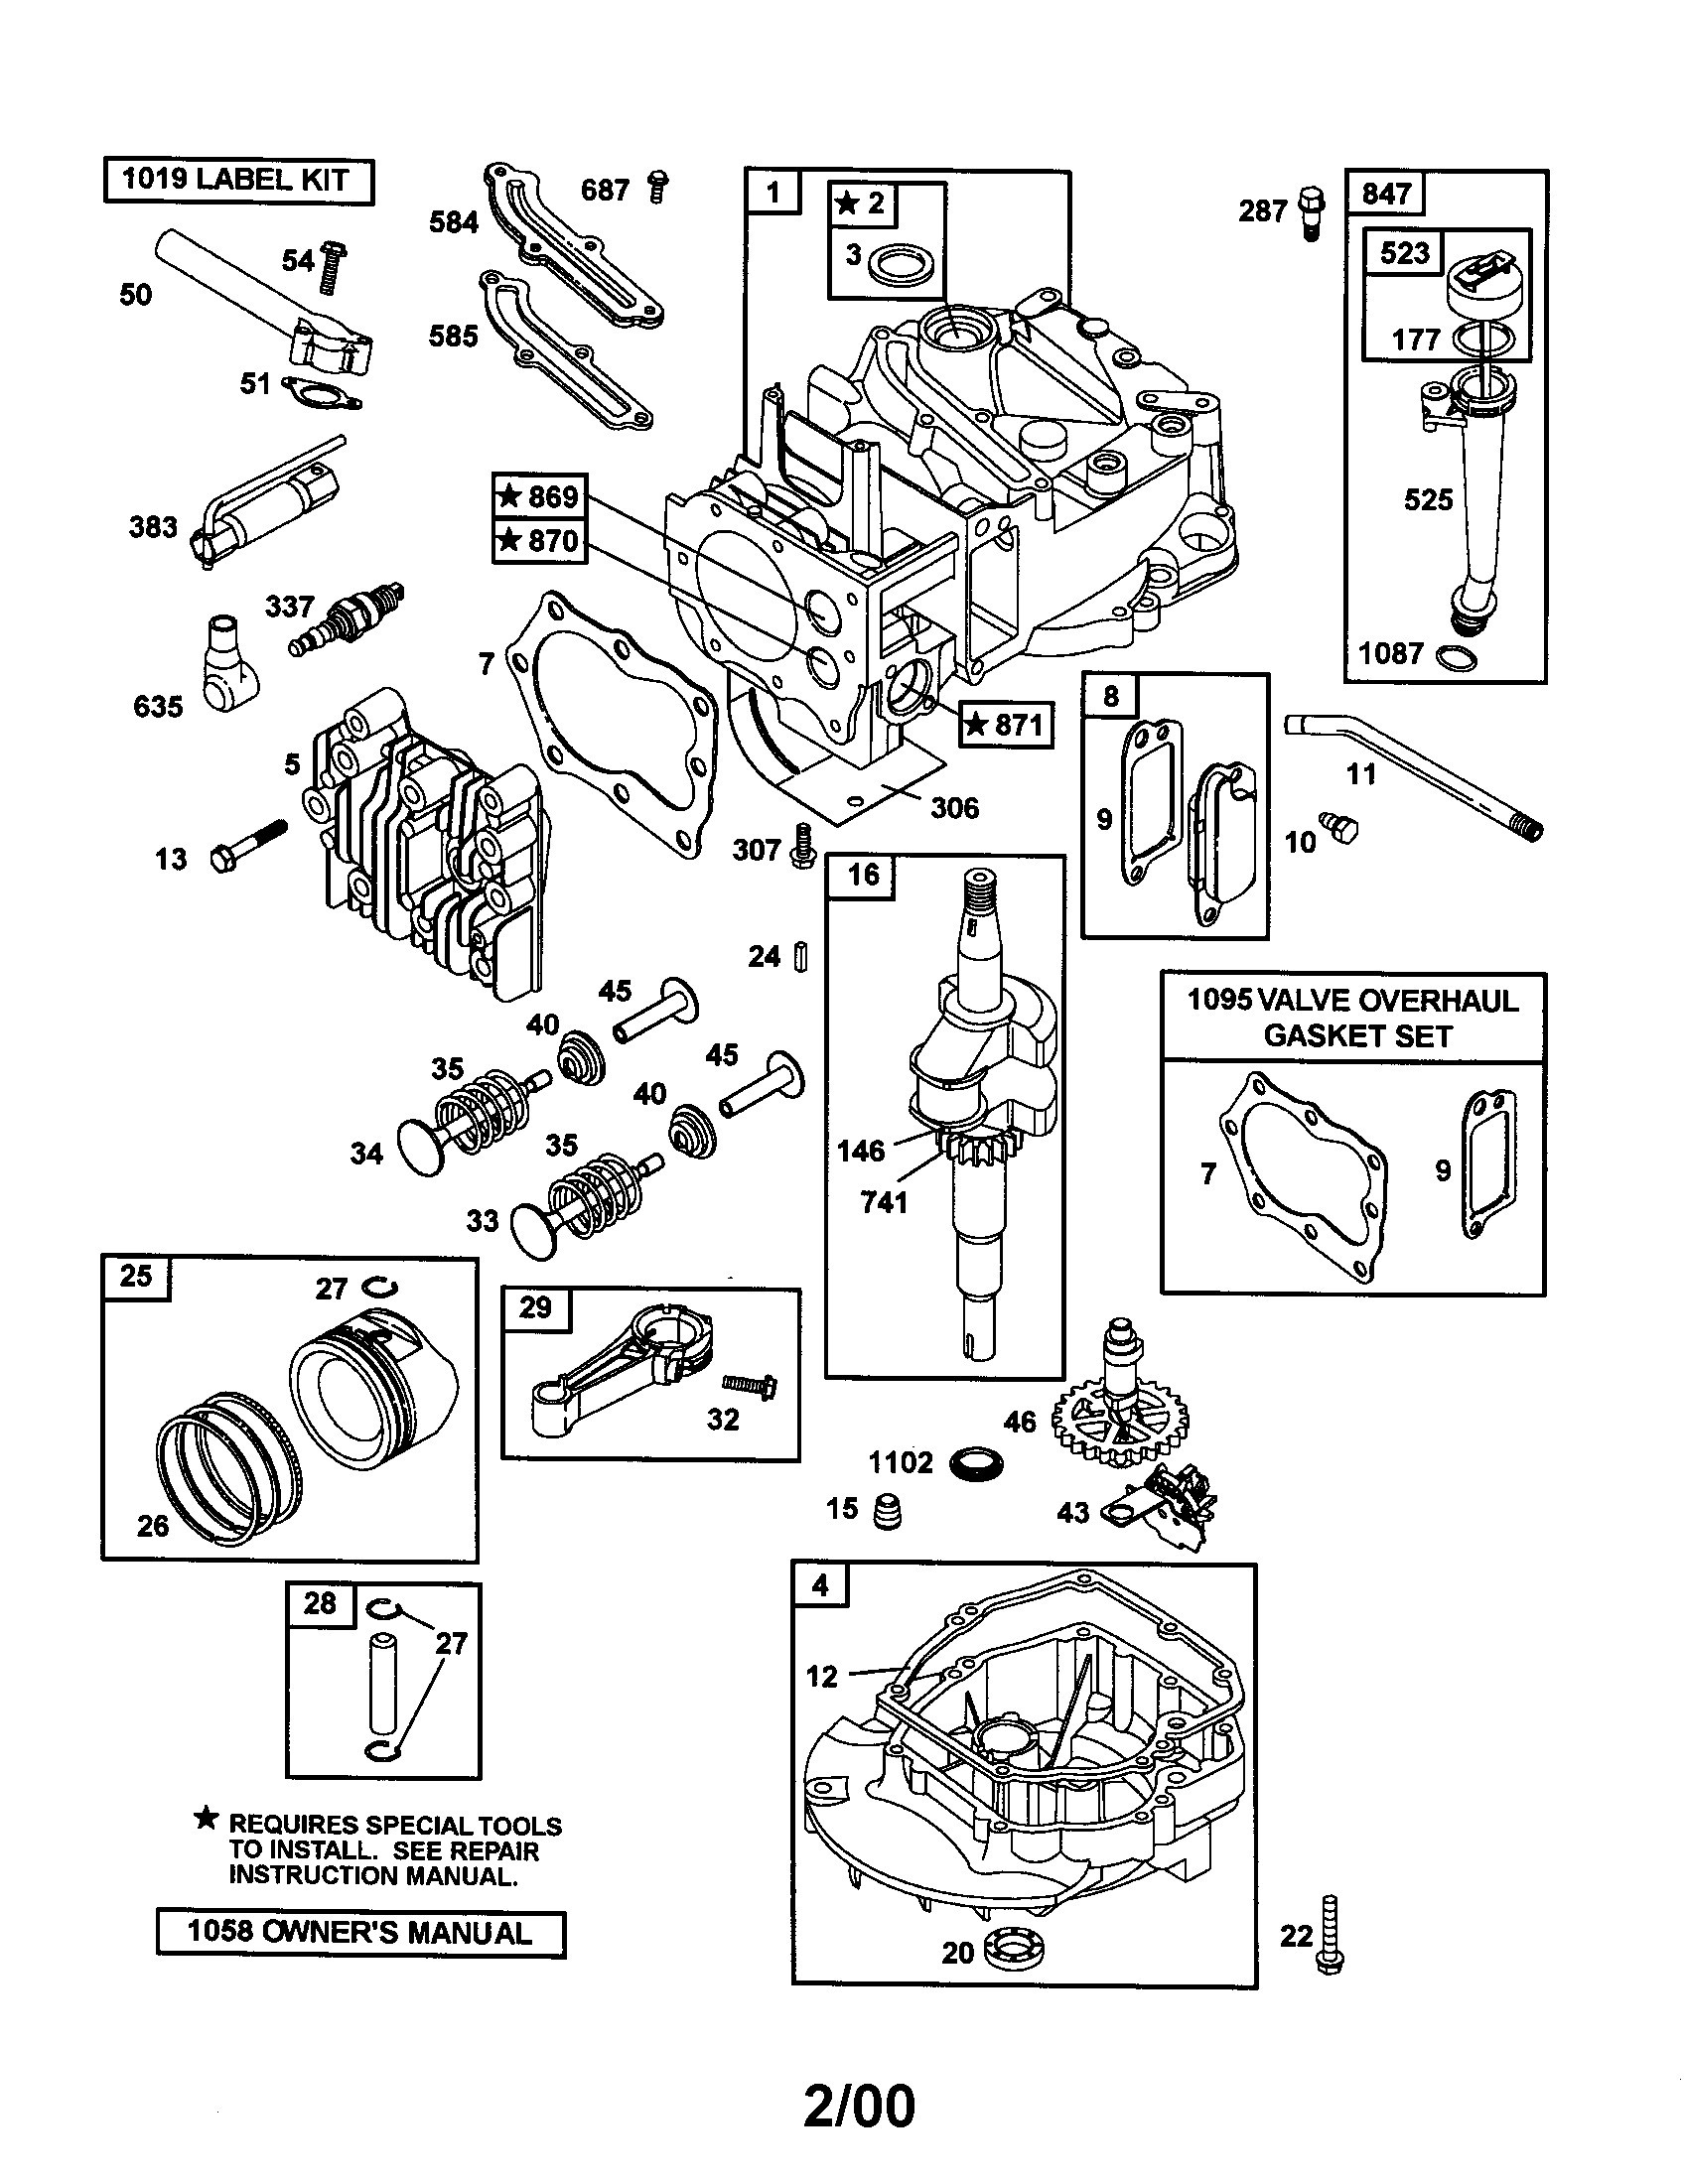 Awesome Engine Manual For Briggs And Stratton Ideas Electrical